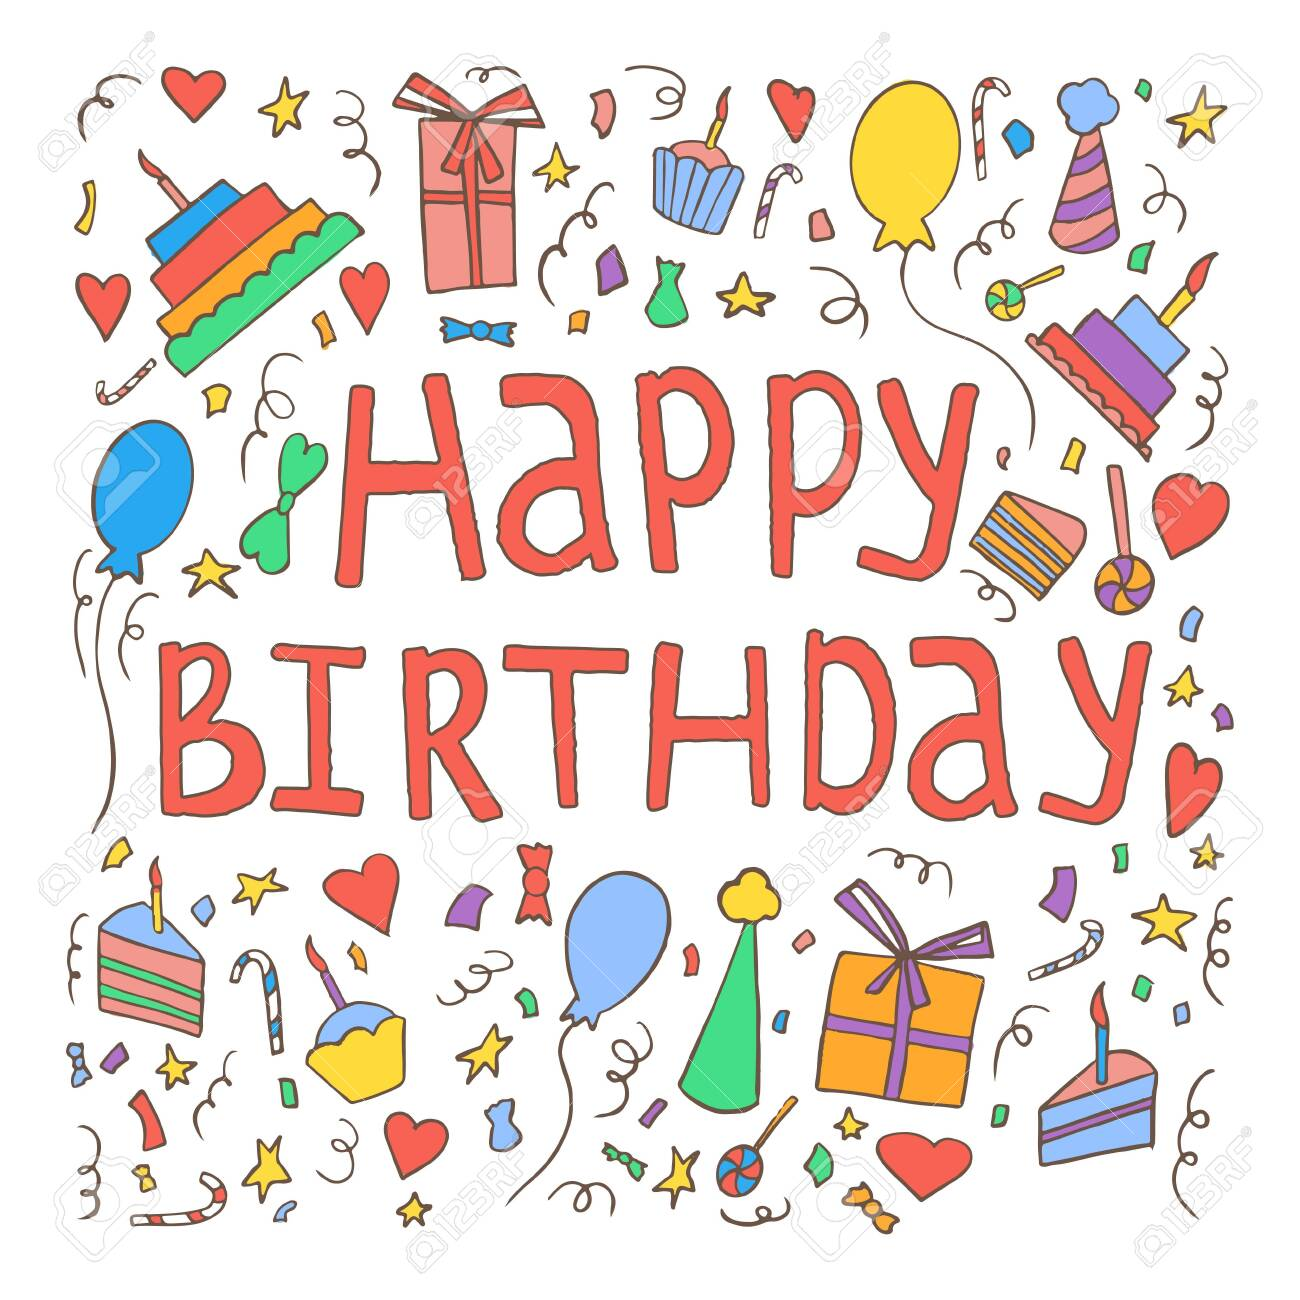 Happy birthday invitation card template. Hand drawn birthday elements, cakes, gift boxes, balloons, garlands, fireworks, candles and handwritten birthday phrase. - 144325205